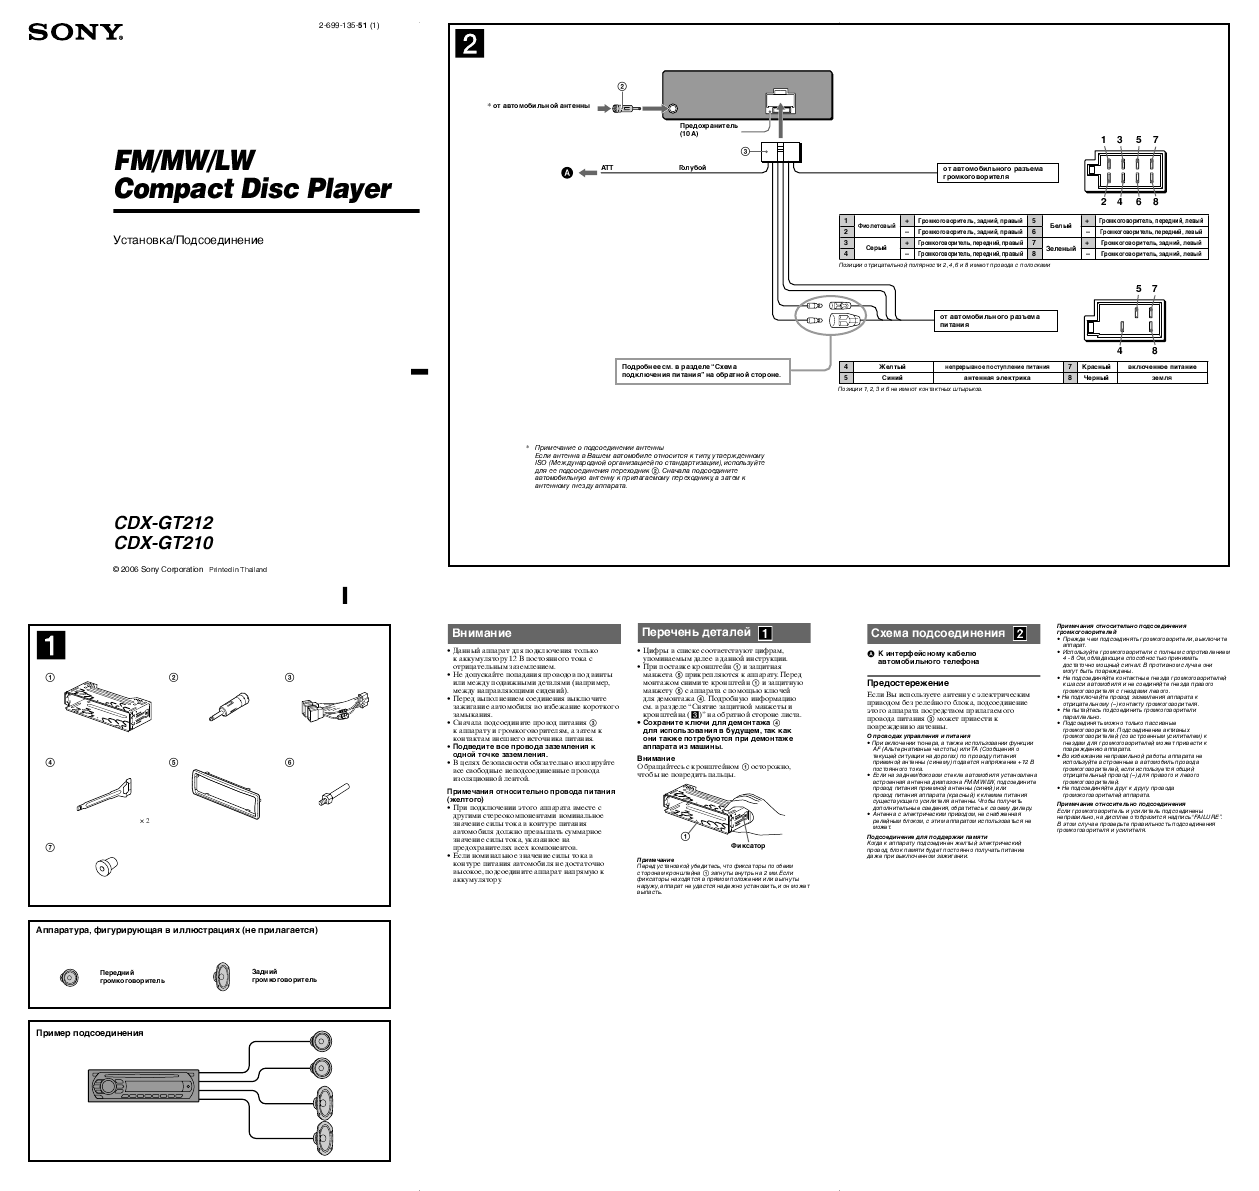 f379d734 21f0 ed54 89c2 fcea617d58e2 000001 search sony cdx m60ui user manuals manualsonline com sony cdx s2210 wiring diagram at n-0.co